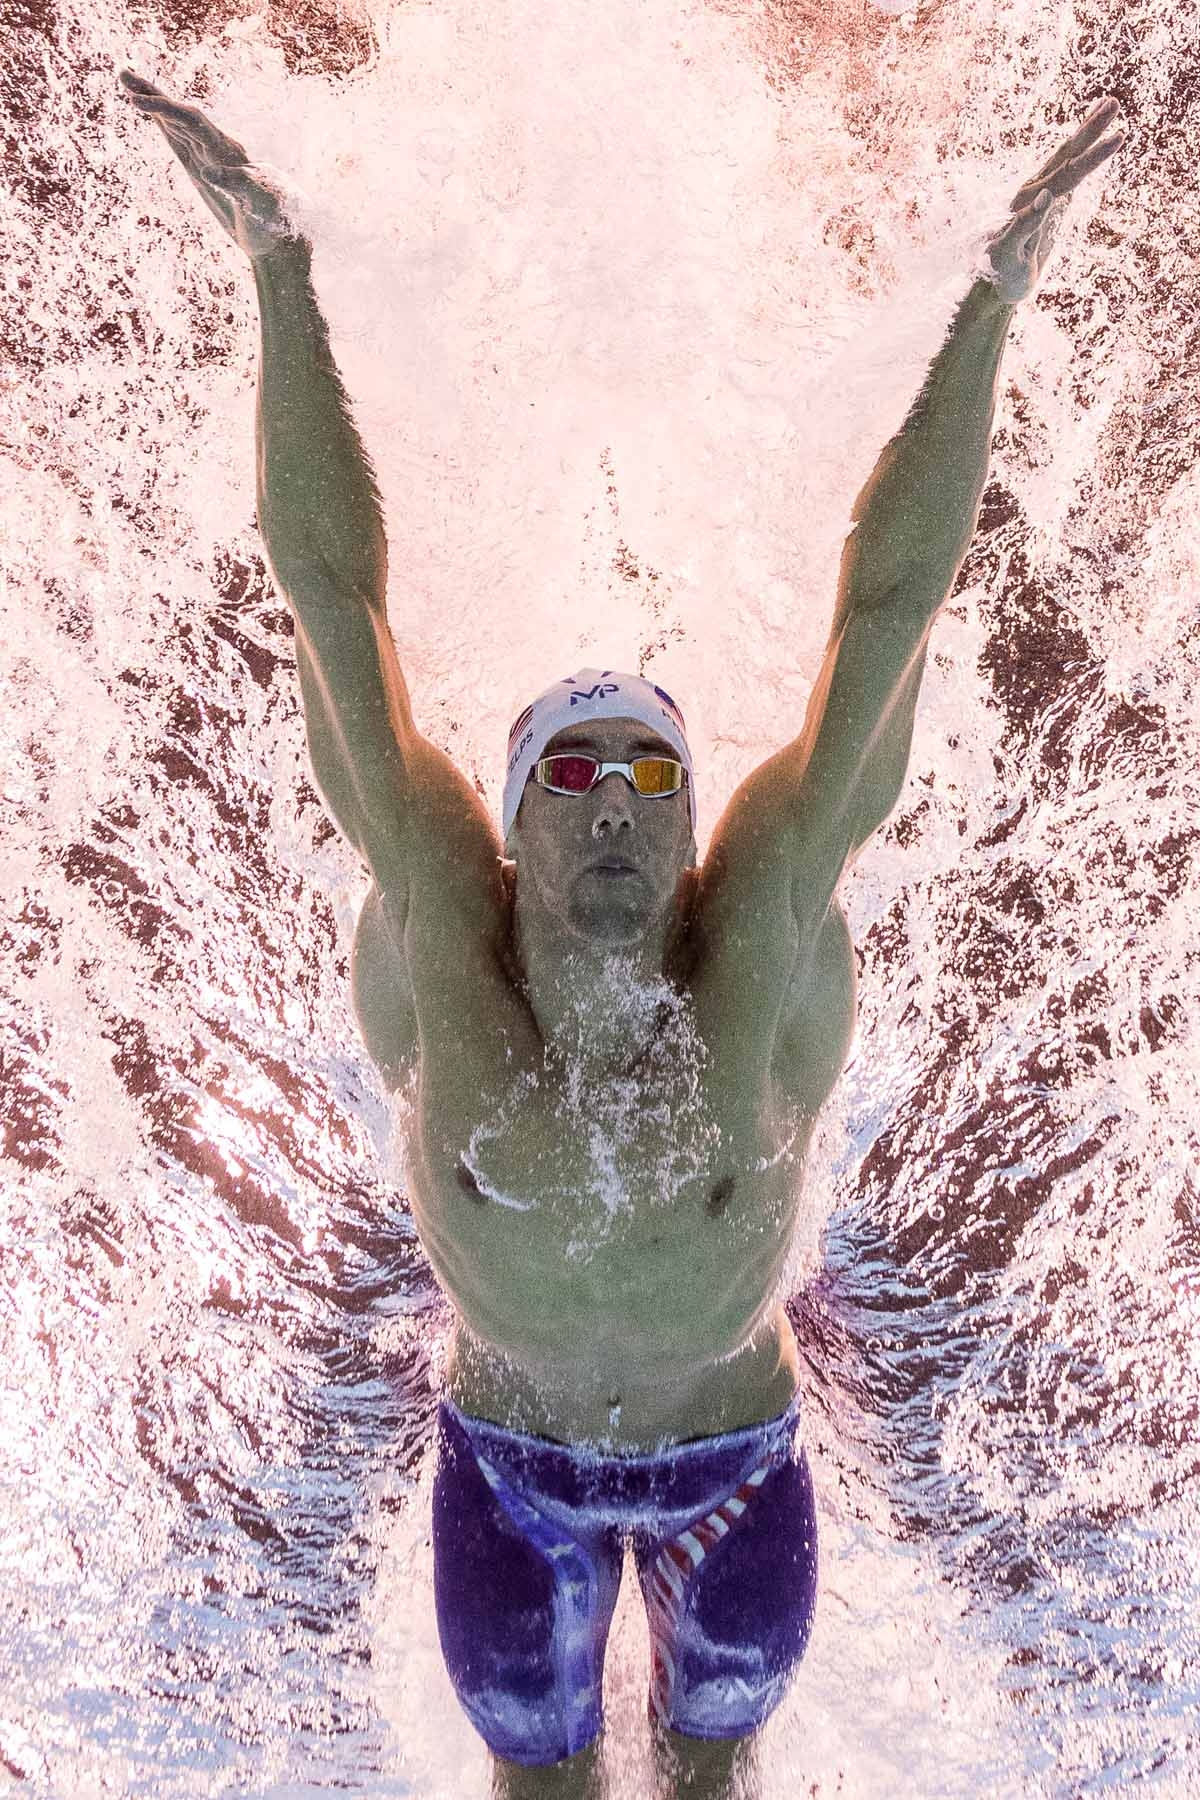 USA's Michael Phelps competes in a Men's 100m Butterfly heat during the swimming event at the Rio 2016 Olympic Games at the Olympic Aquatics Stadium in Rio de Janeiro on August 11, 2016.